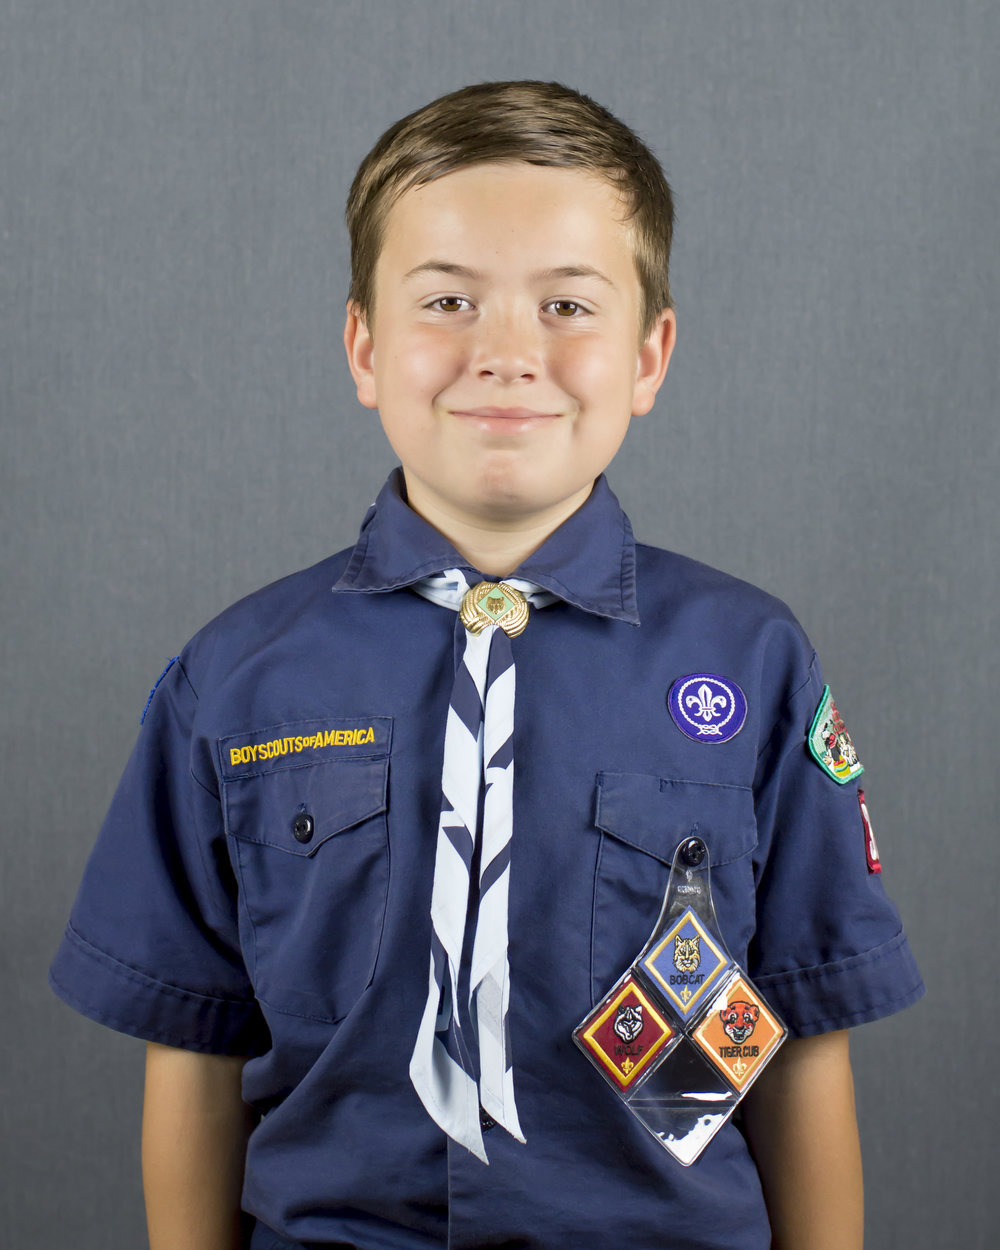 Boy Scout Headshot Photo